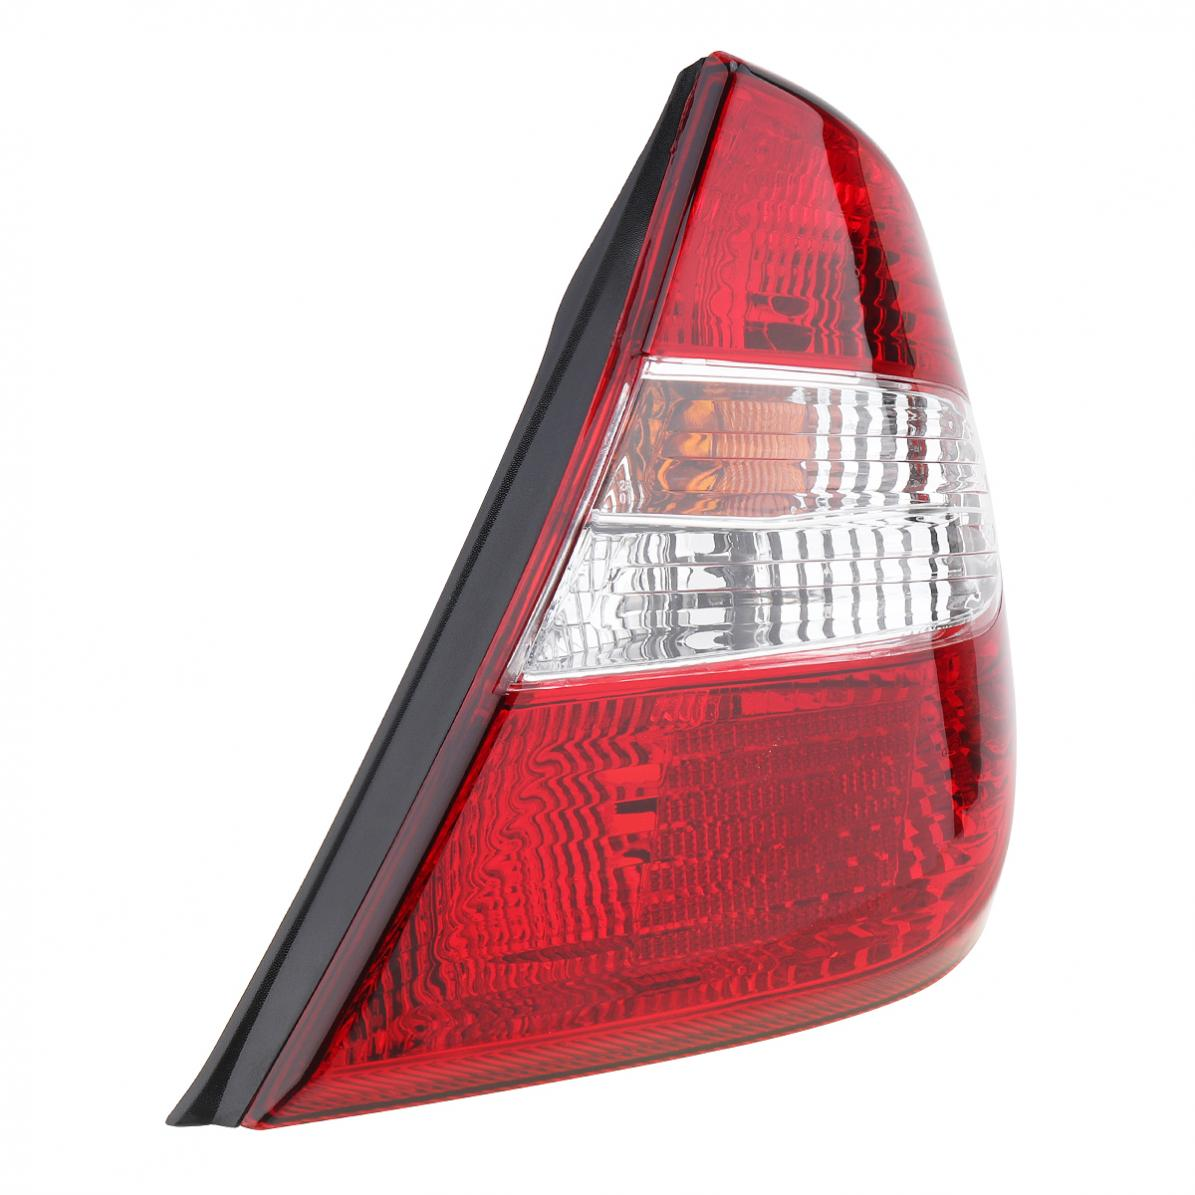 Durable Waterproof Car Right Side RH Tail Light for Toyota ACV30 Toyota Camry 2002 2004